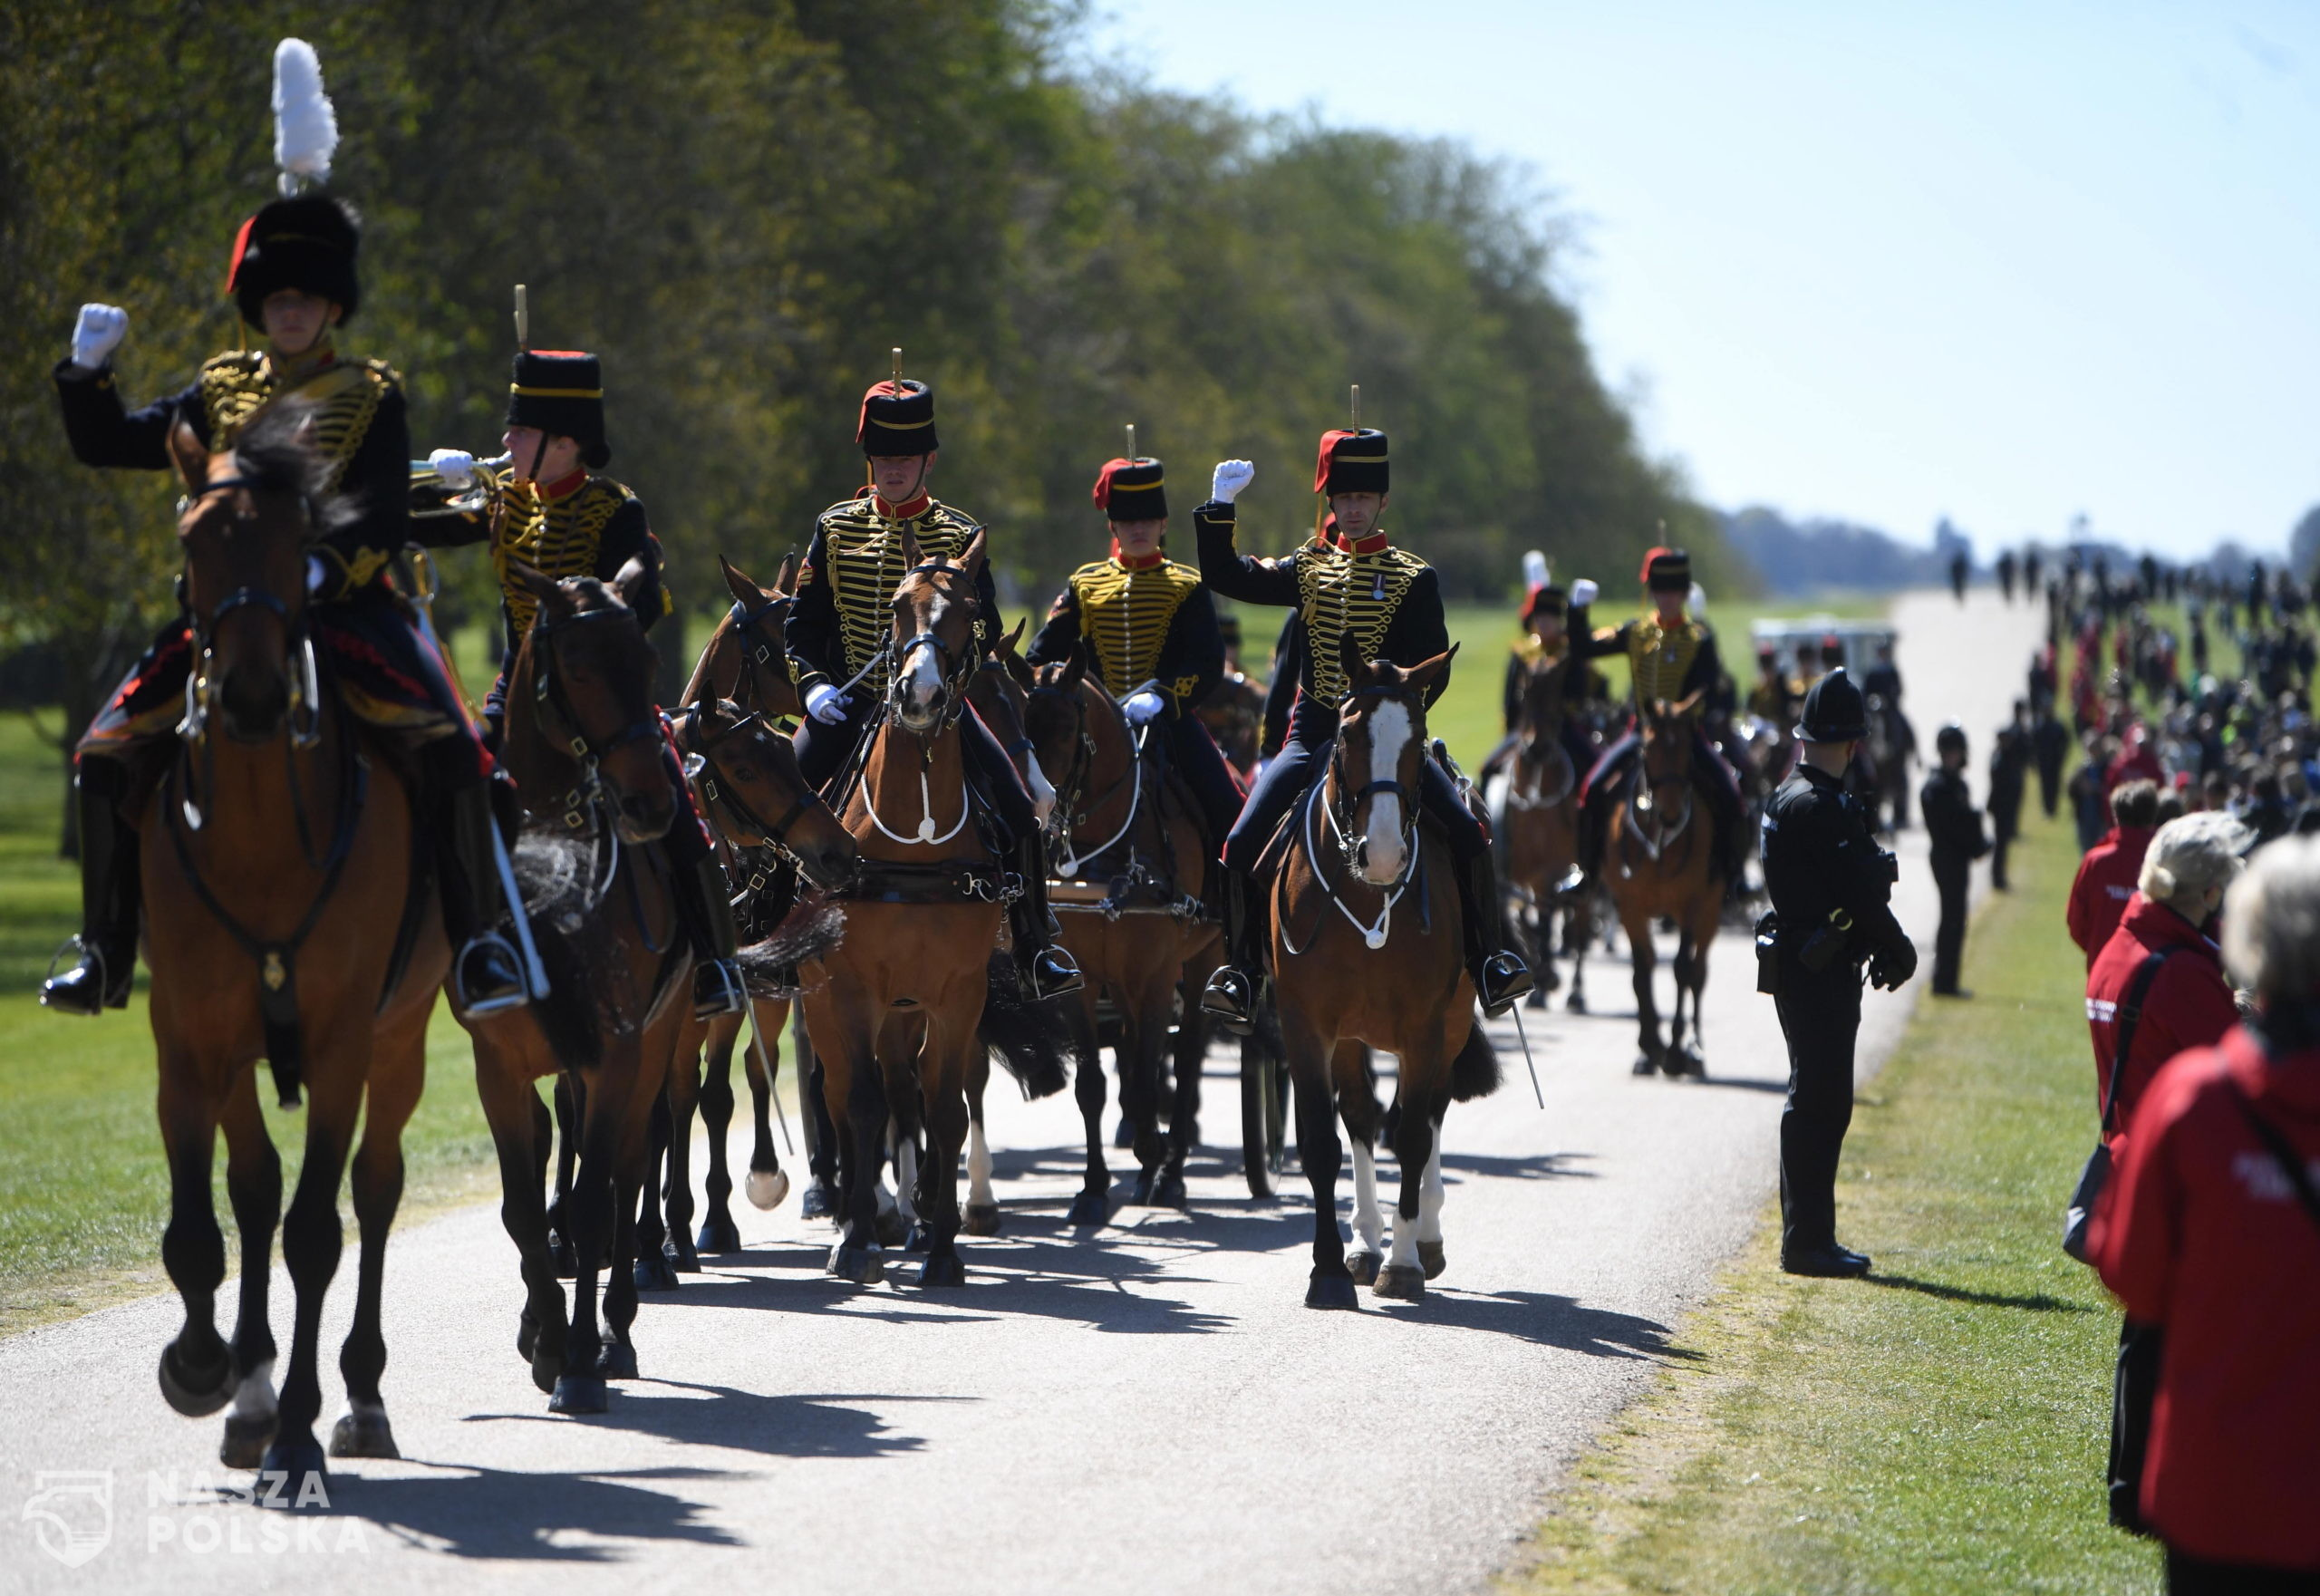 epa09141114 The Kings Troop Royal Horse Artillery arrive on the Long Walk to Windsor Castle following the passing of Britain's Prince Philip, in Windsor, Britain, 17 April 2021. Britain's Prince Philip, the Duke of Edinburgh, has died on 09 April 2021 aged 99 and his funeral will take place in Windsor on 17 April.  EPA/NEIL HALL  Dostawca: PAP/EPA.